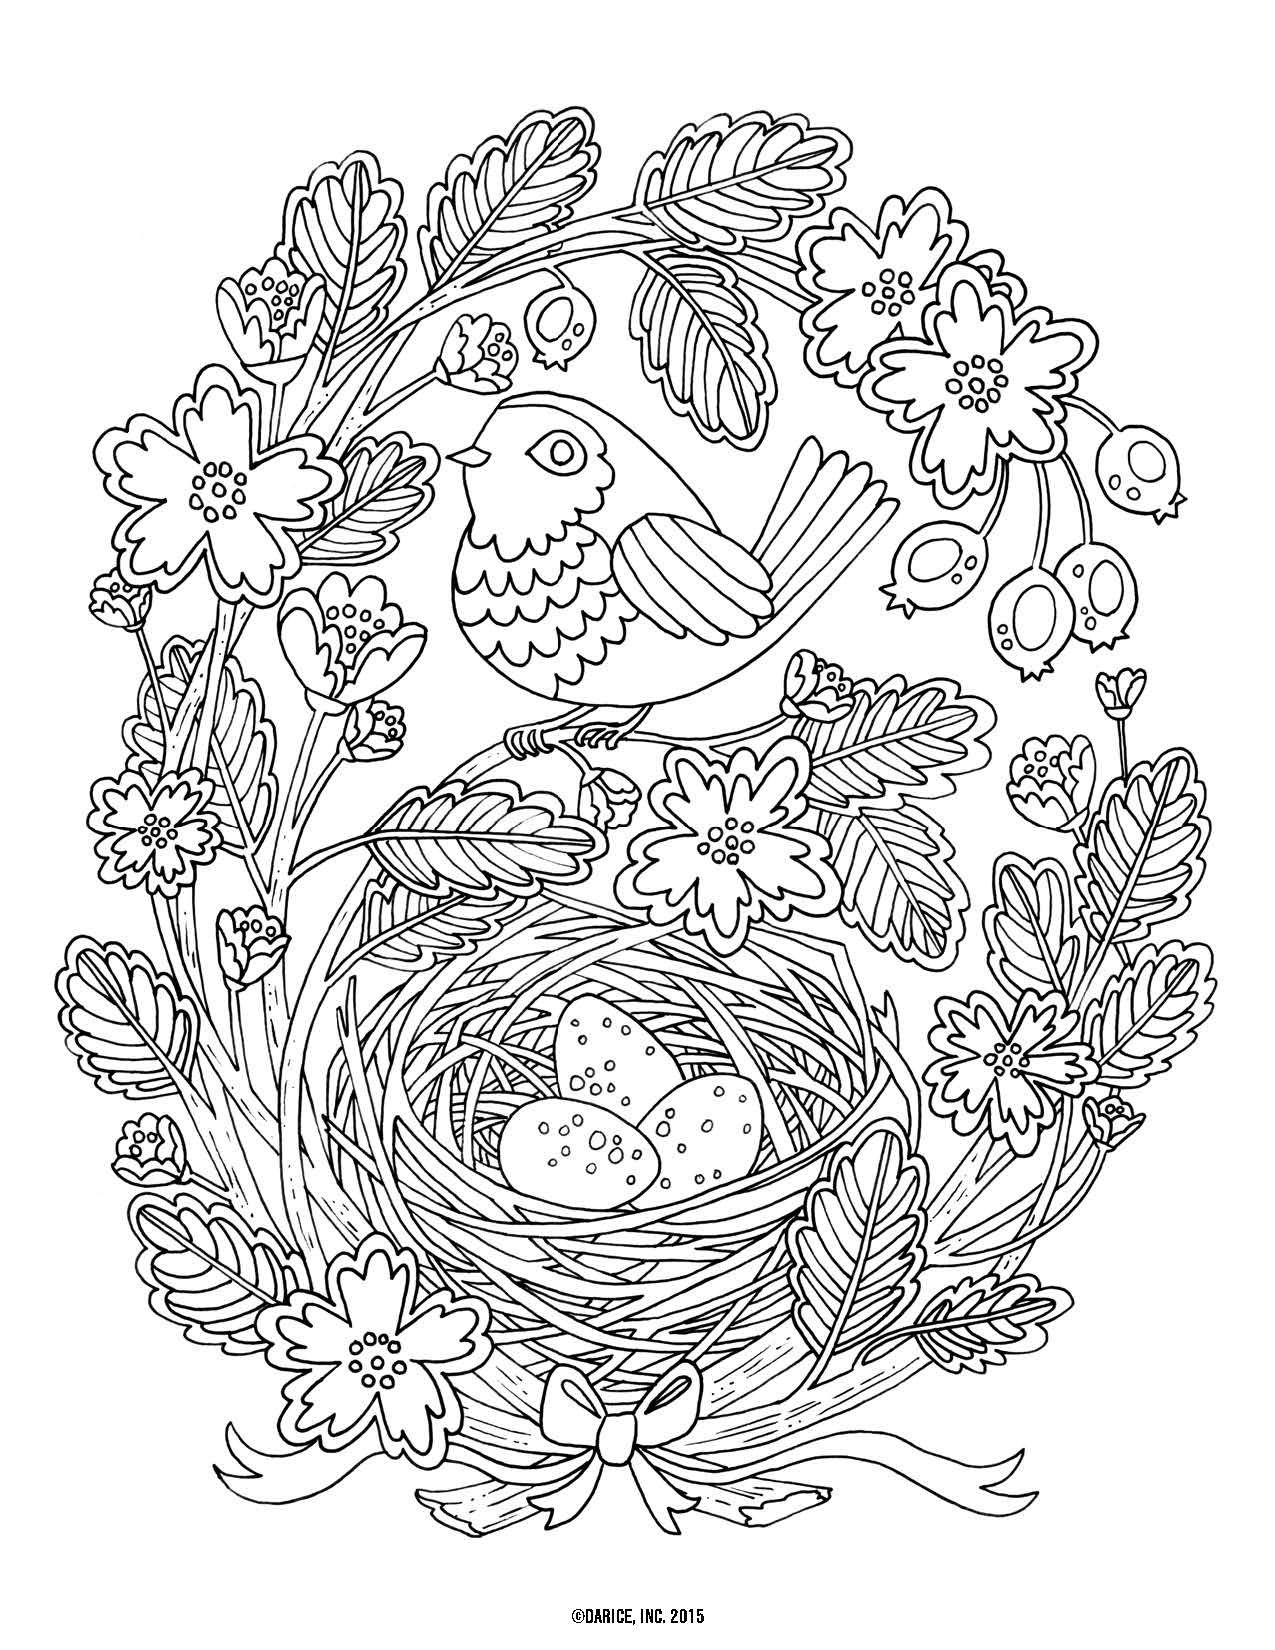 32 Coloring Pages For Dementia Patients Bird Coloring Pages Mandala Coloring Pages Animal Coloring Pages